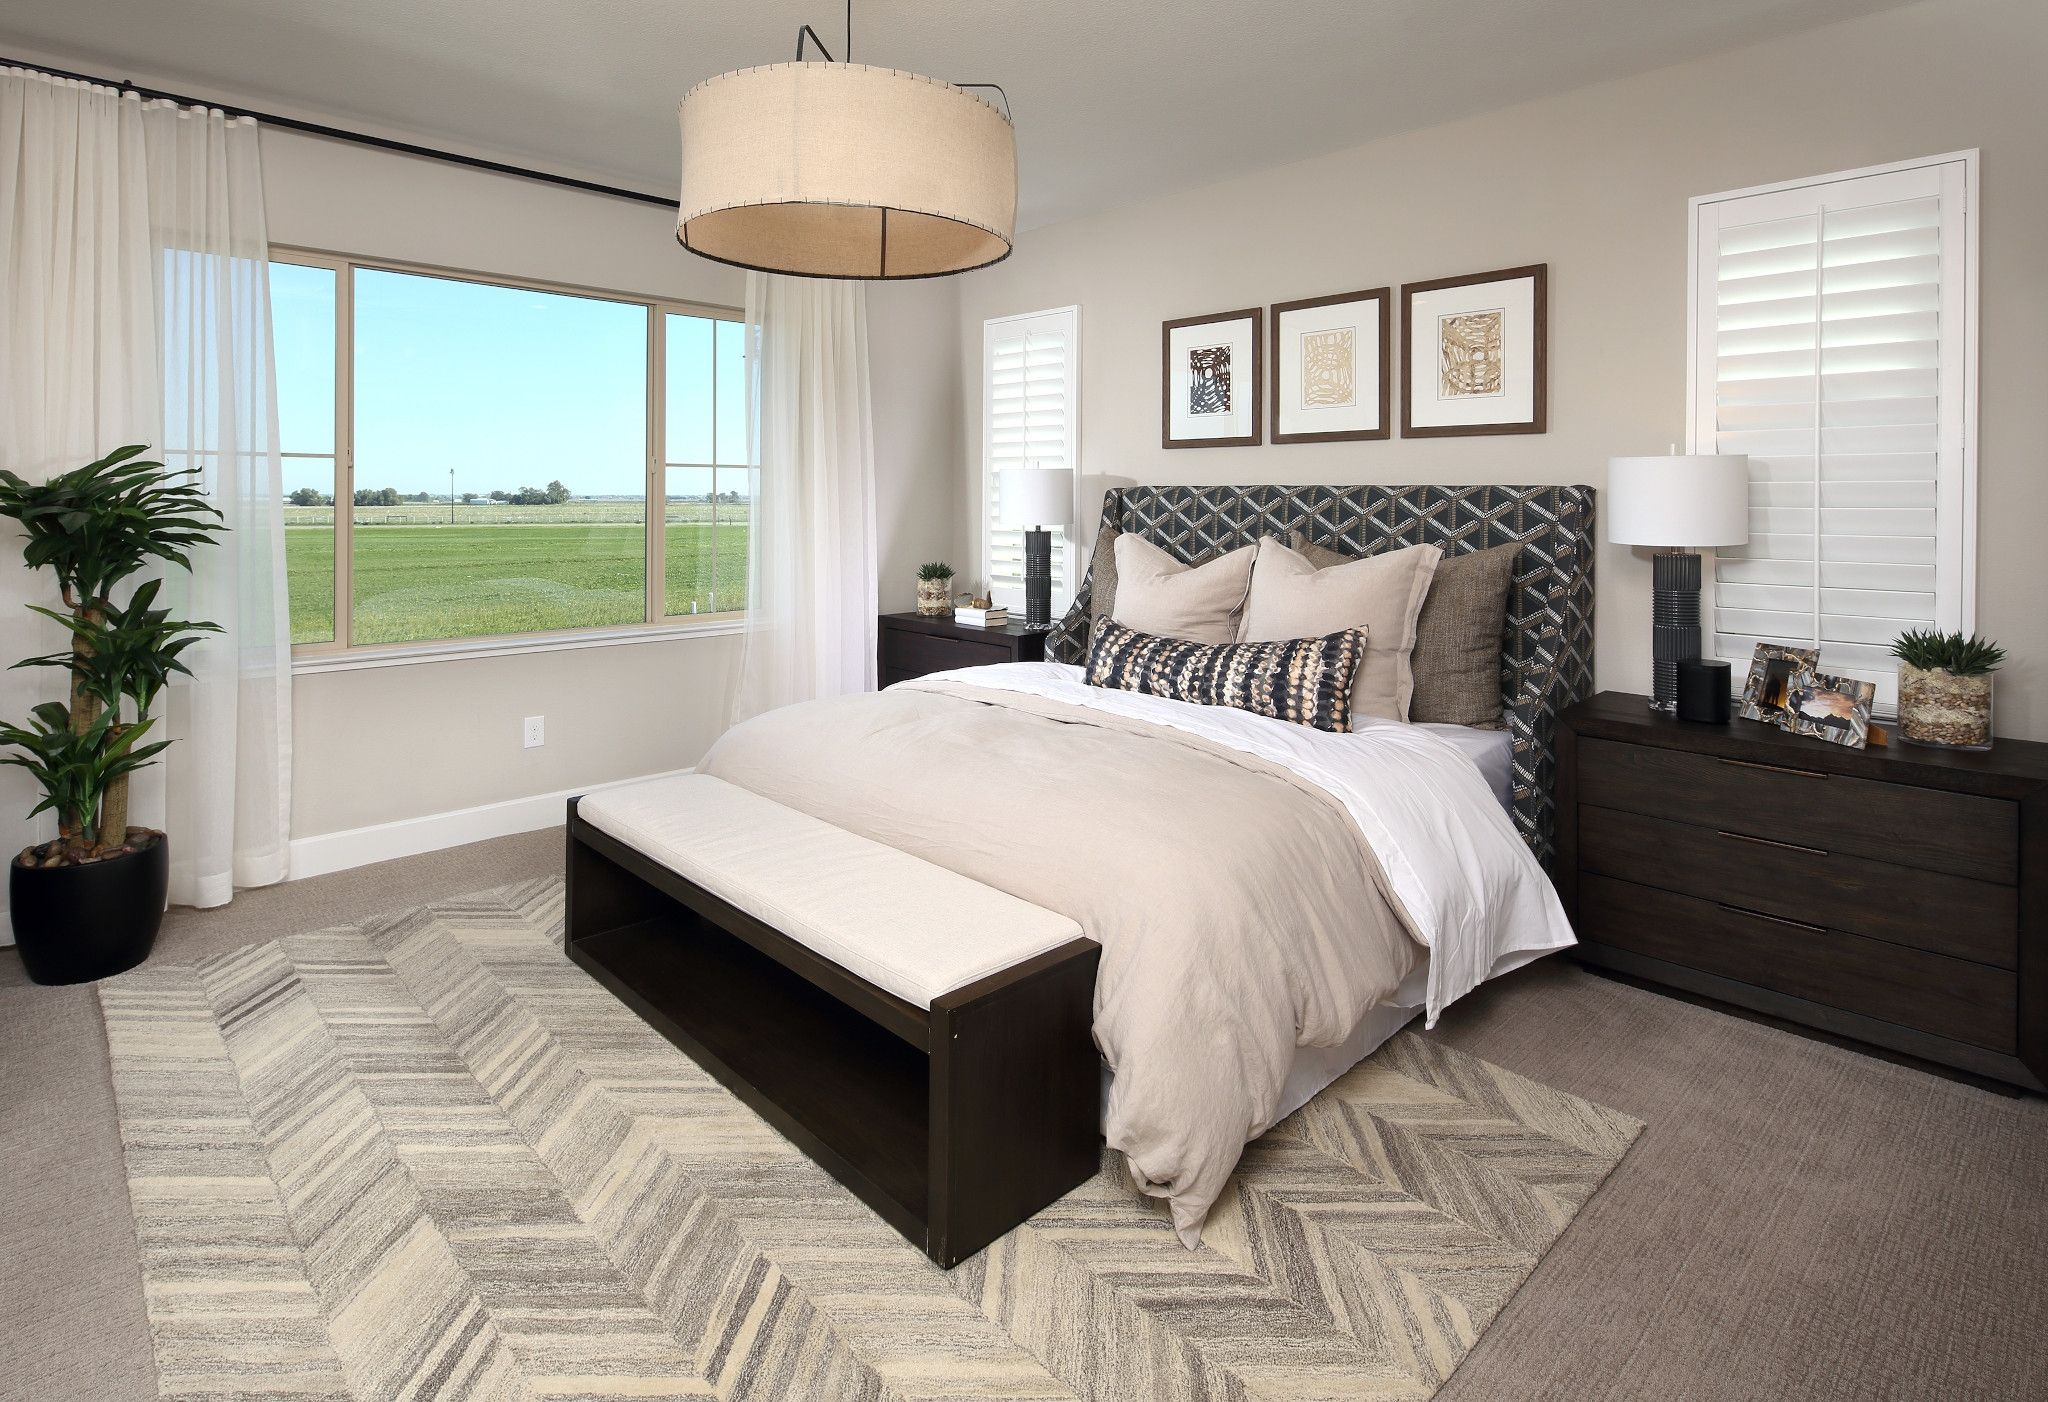 Bedroom featured in the Plan 3 By Shea Homes in Stockton-Lodi, CA